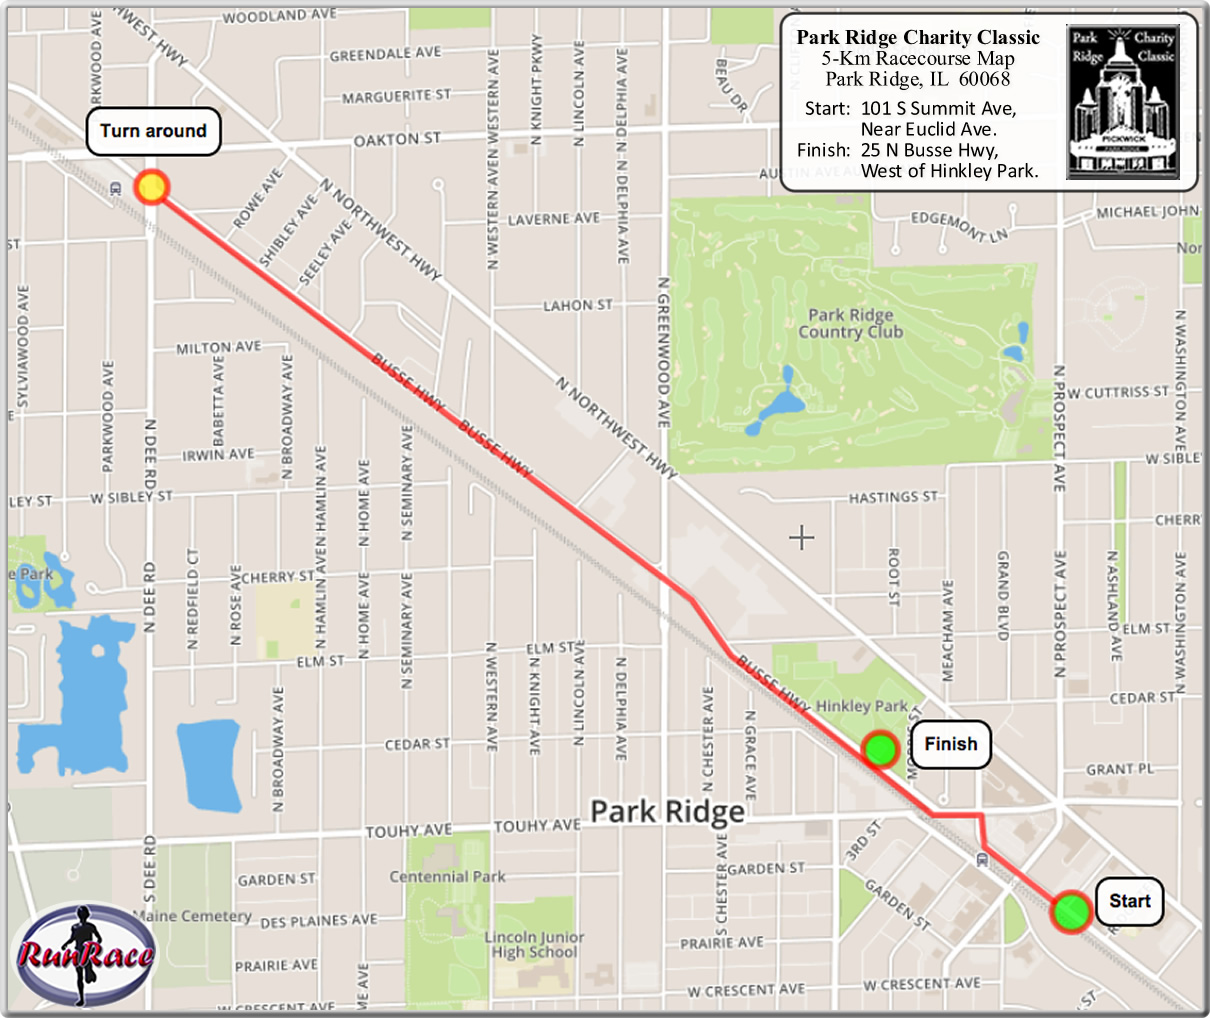 [racecourse map: Park Ridge Charity Classic]